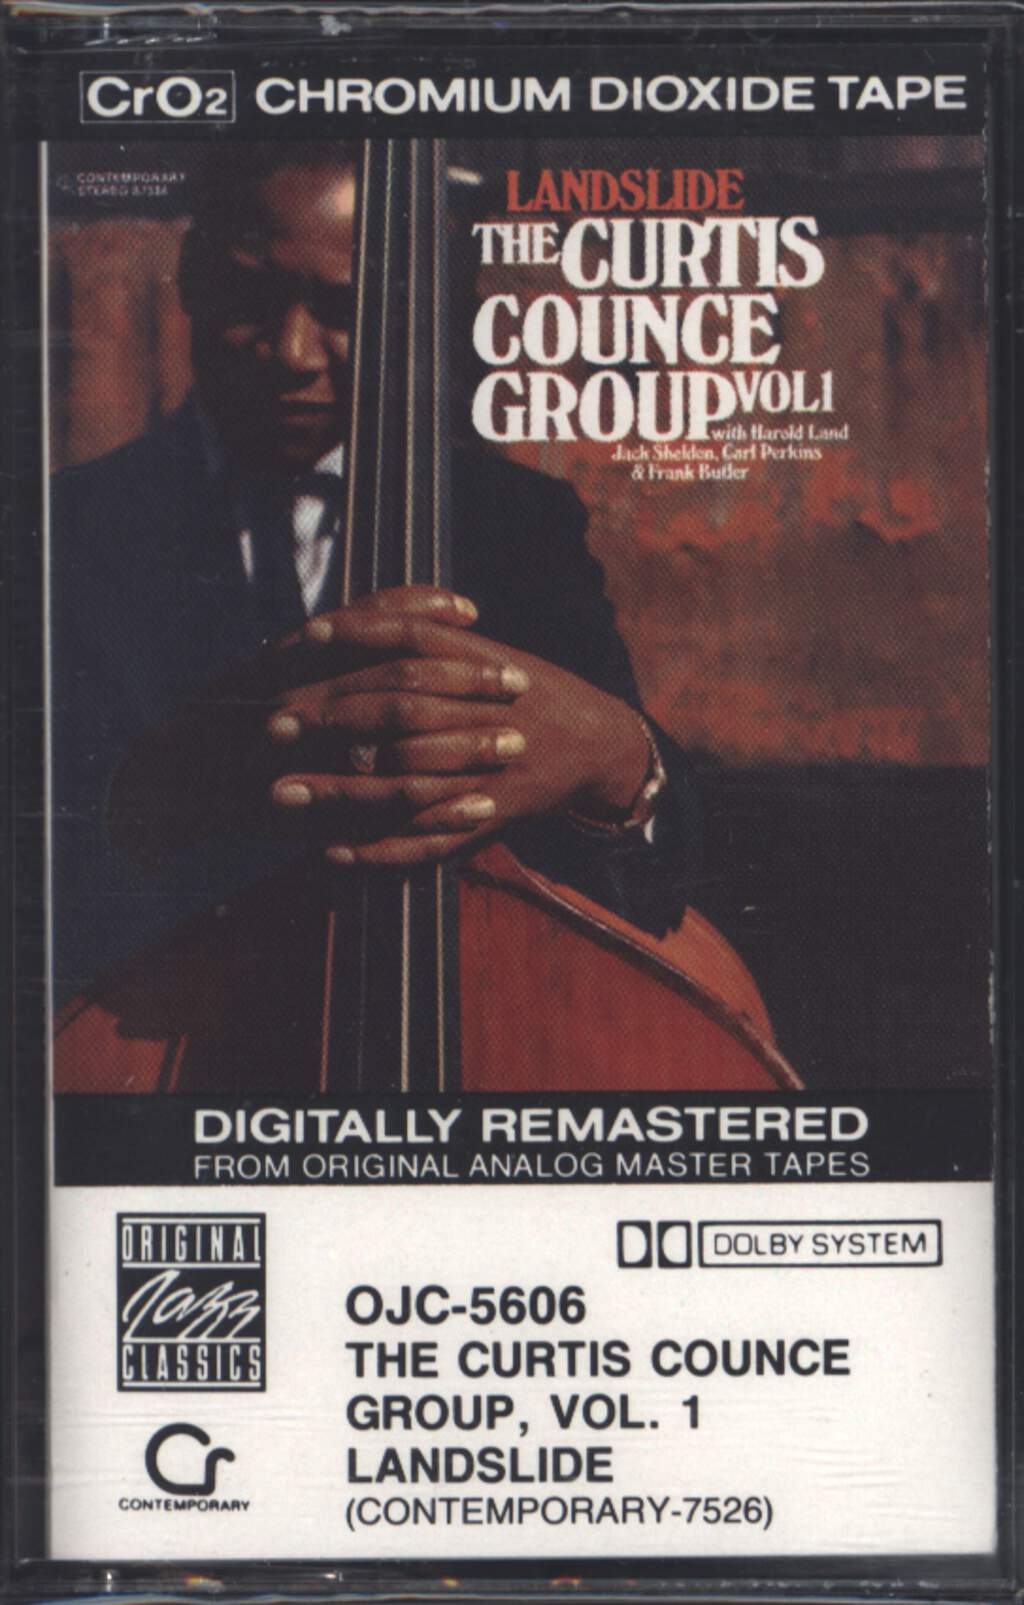 The Curtis Counce Group: Vol 1: Landslide, Tape